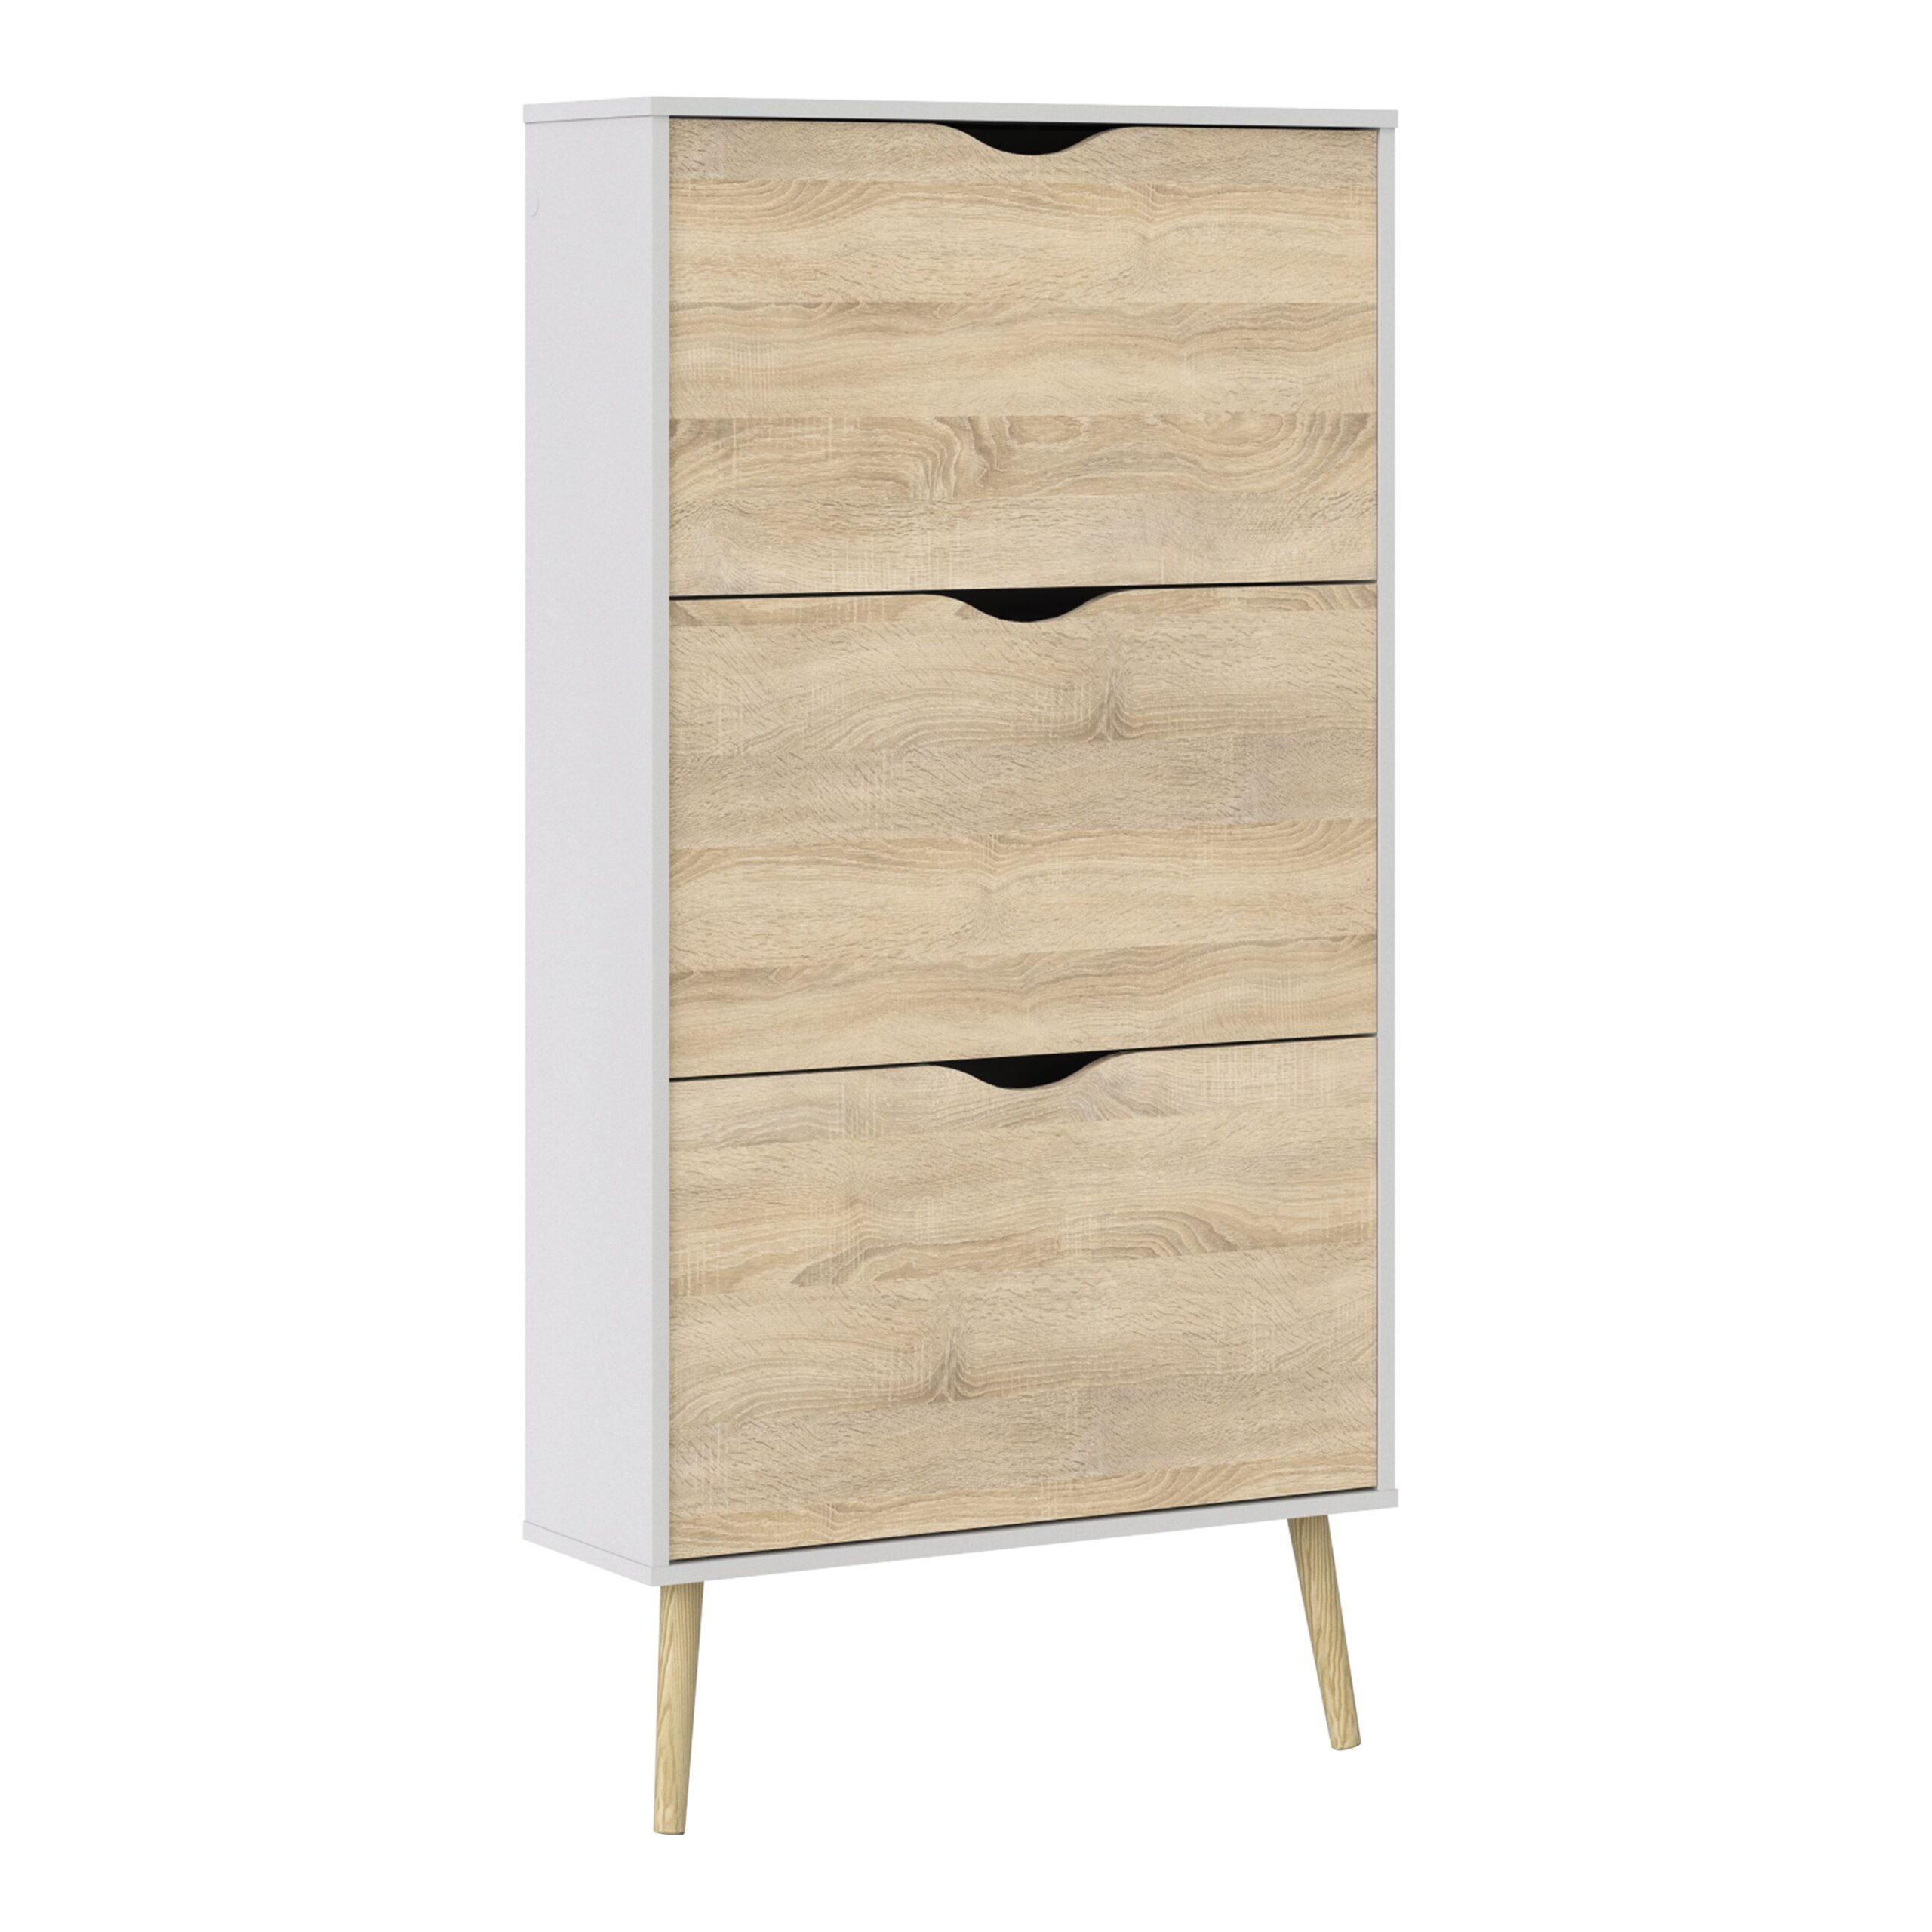 Solo Shoe Cabinet 3 Drawers in White and Oak